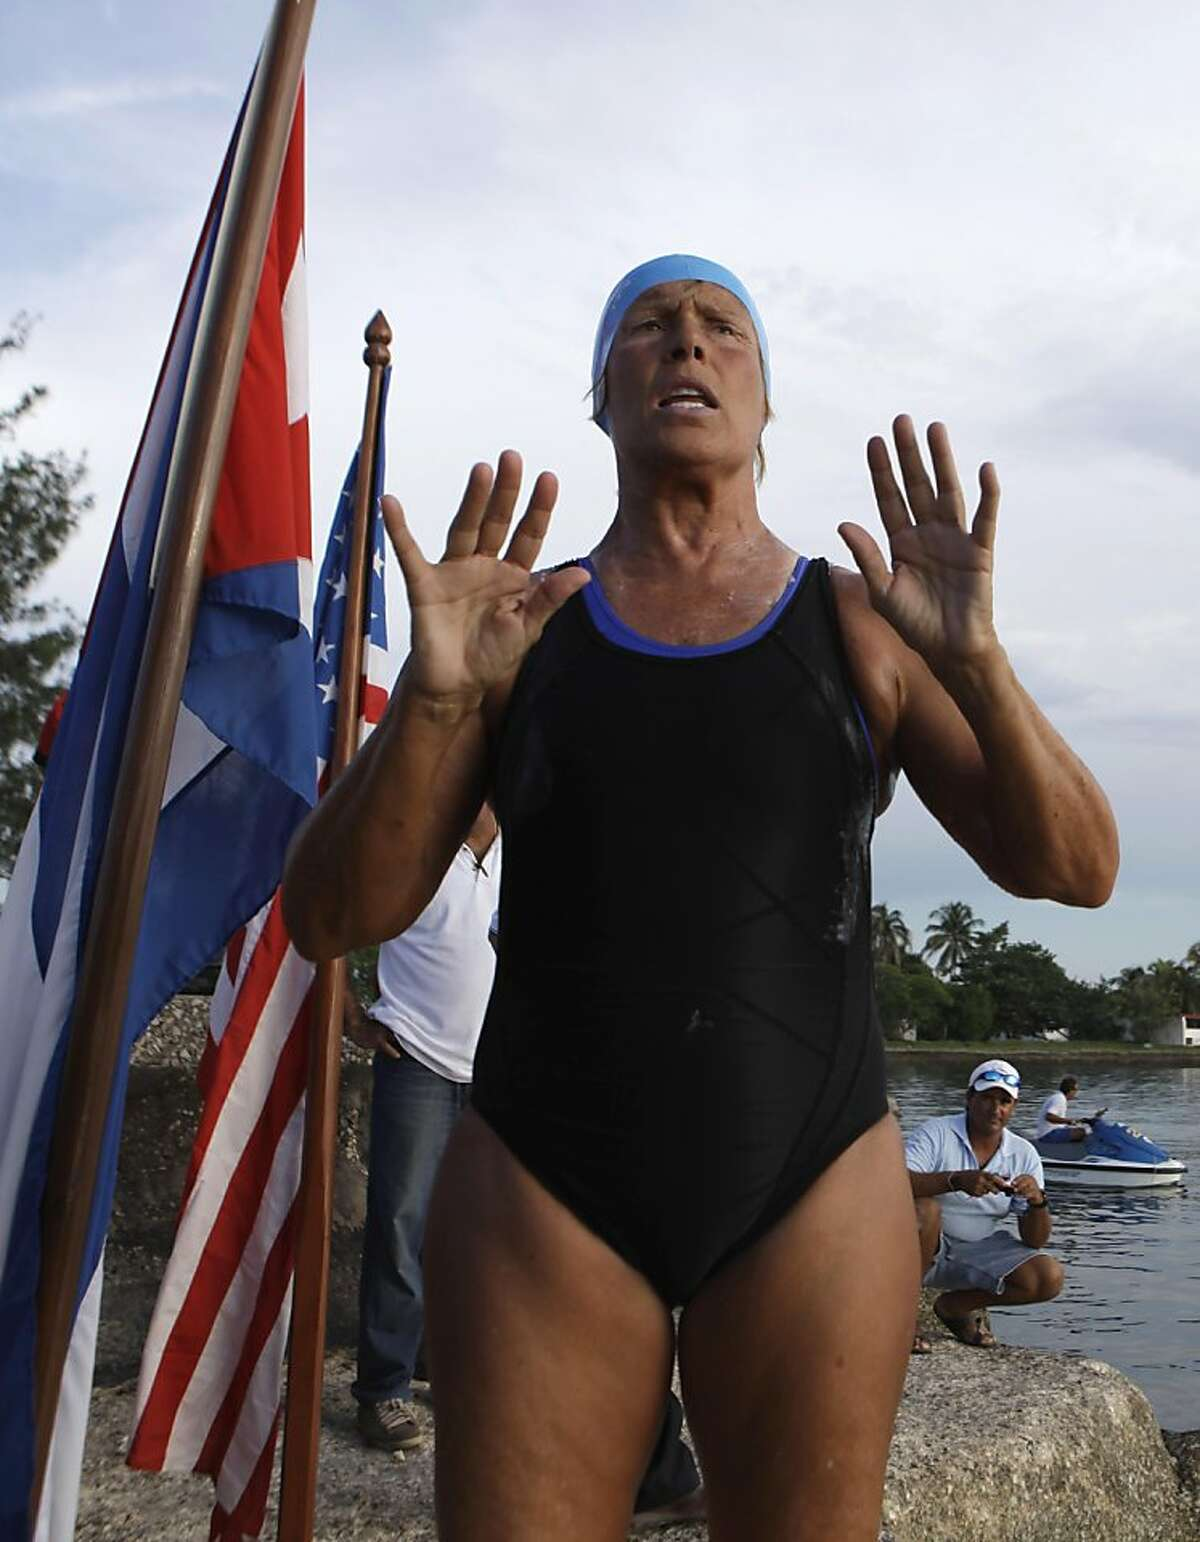 U.S. swimmer Diana Nyad speaks with journalists before her swim from Cuba to Florida at the Hemingway Marina in Havana, Cuba, Friday Sept. 23, 2011. Endurance athlete Nyad will attempt for a second time to swim from Cuba to Florida in hopes of setting a world record at the age of 62. The Los Angeles woman fell short in a previous attempt at the swim last month, calling it off after 29 hours in the water and about halfway through the 103-mile (166-kilometer) journey. (AP Photo/Javier Galeano)